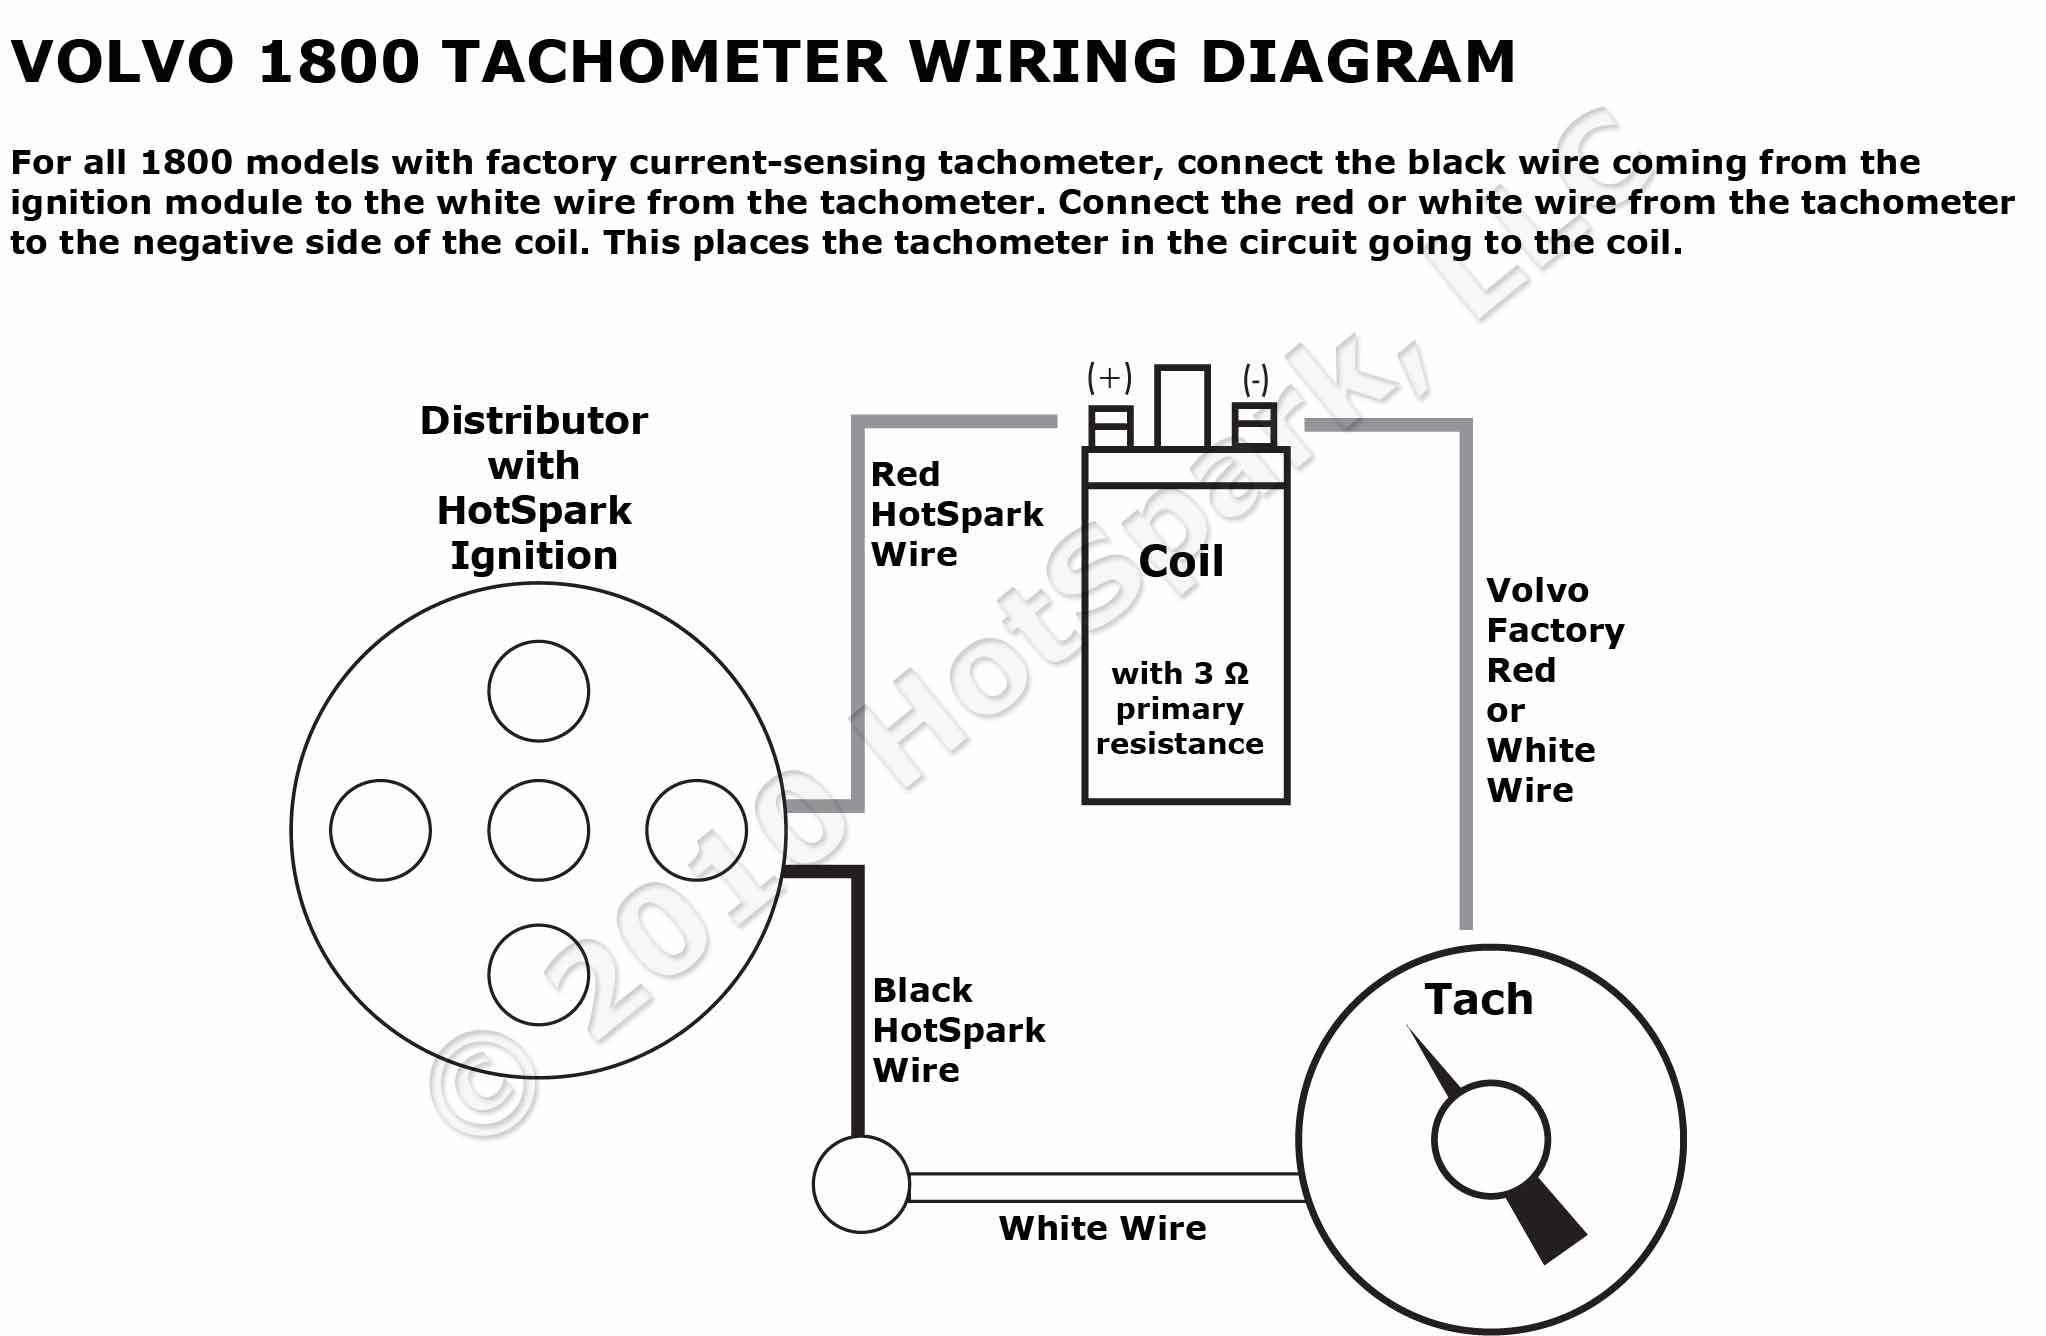 volvo 1800 tachometer wiring diagram with hotspark ignition rh hot spark com boat tachometer wiring diagram boat tachometer wiring diagram